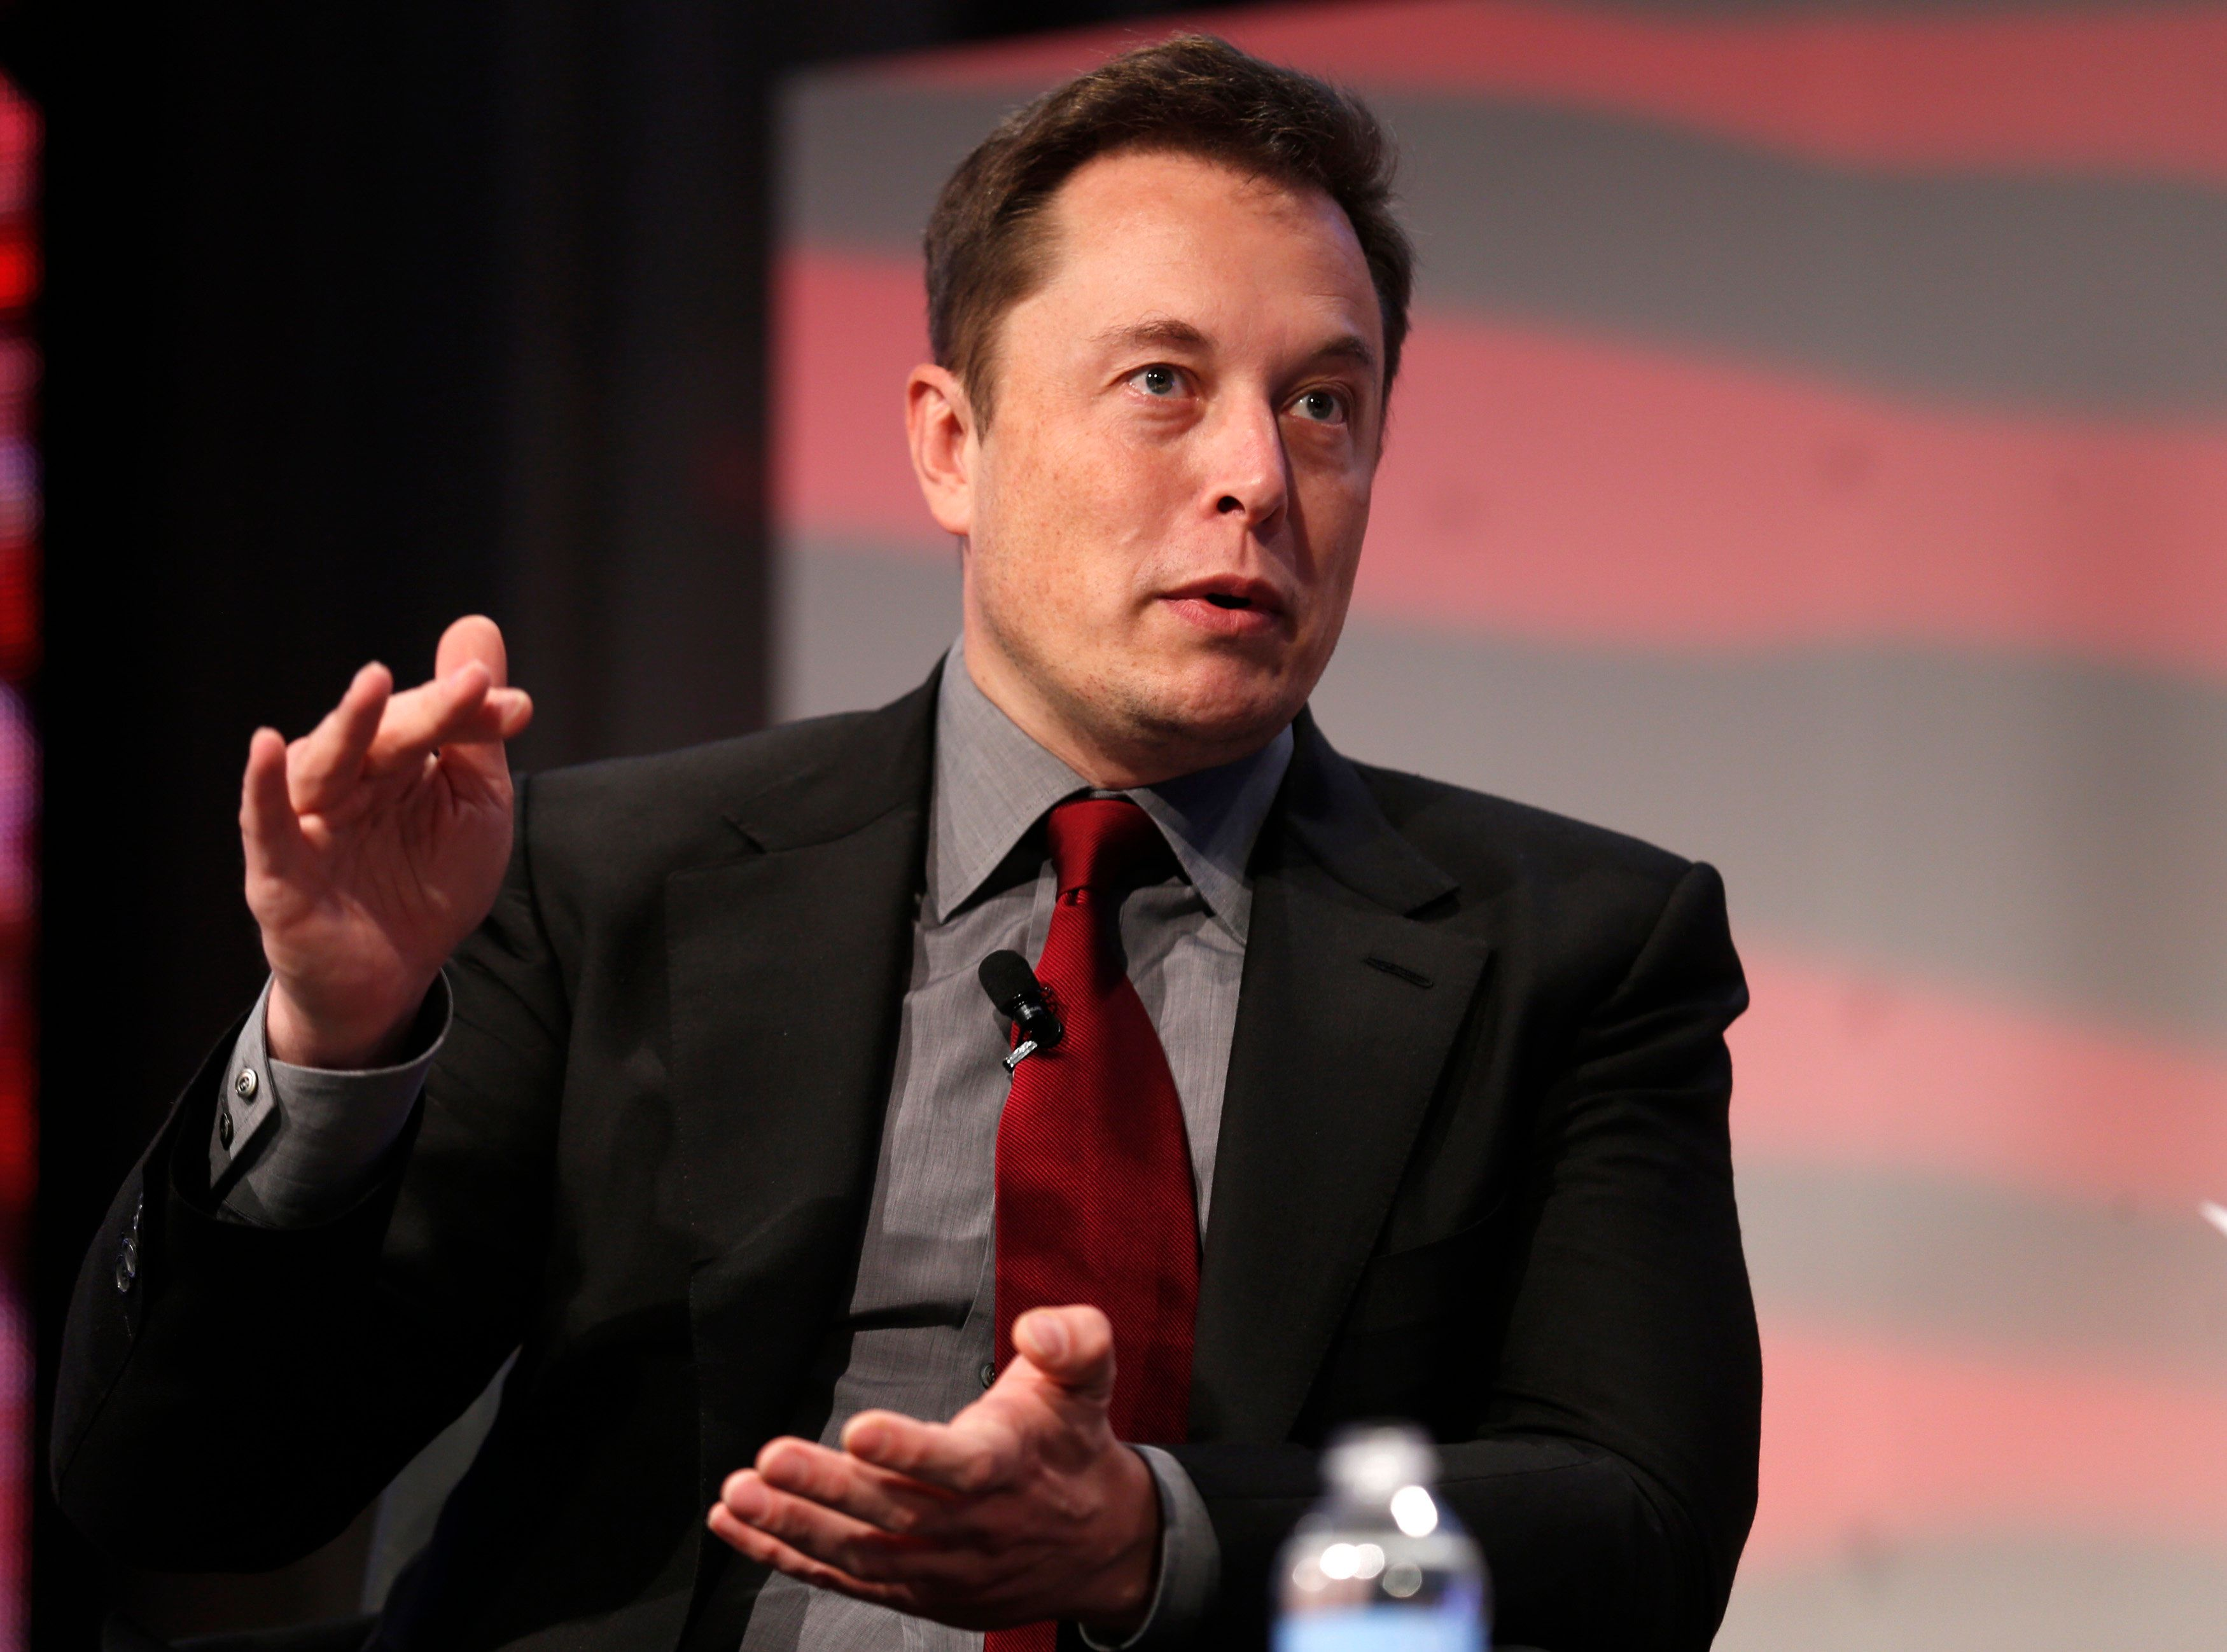 """Tesla Motors CEO Elon Musk talks at the Automotive World News Congress at the Renaissance Center in Detroit, Michigan, January 13, 2015. Tesla Motors Inc plans to boost production of electric cars to """"at least a few million a year"""" by 2025 from fewer than 40,000 last year, Musk said Tuesday. Picture taken January 13, 2015.    REUTERS/Rebecca Cook   (UNITED STATES - Tags: TRANSPORT BUSINESS)"""